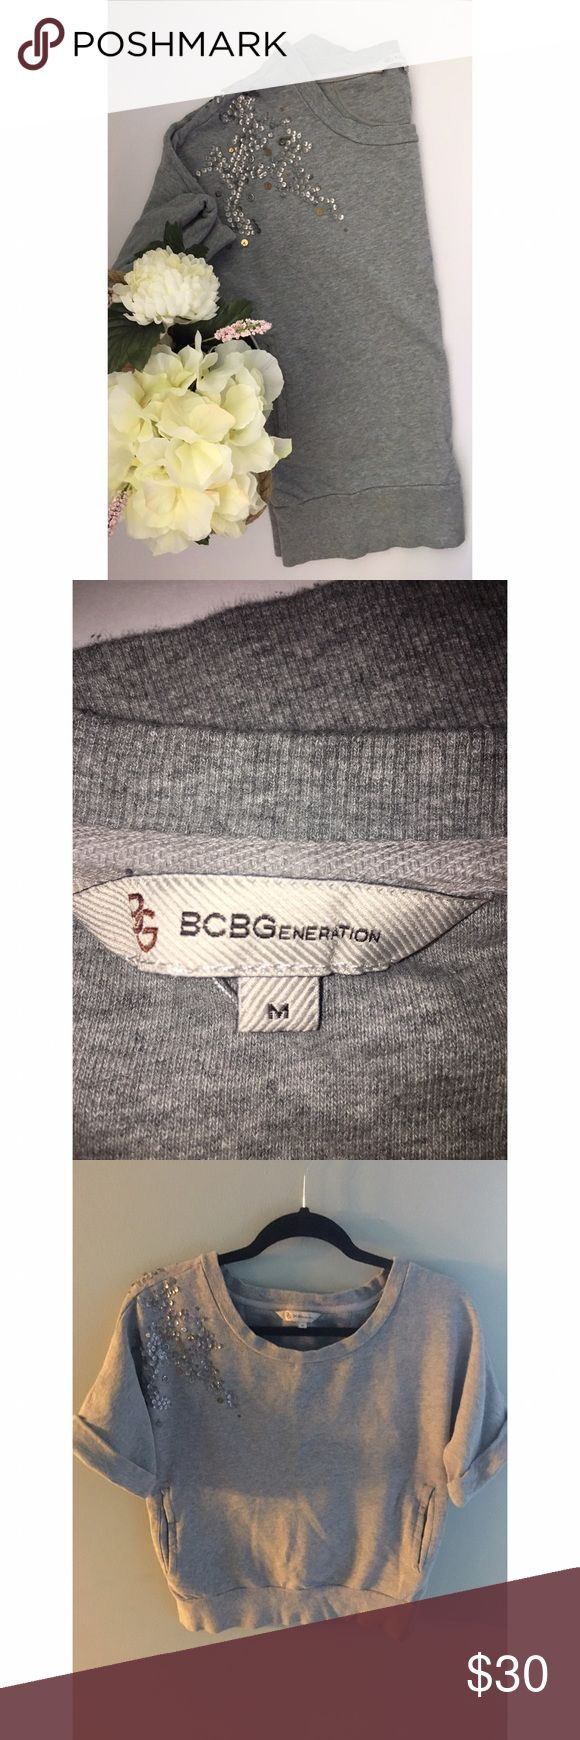 "BCBGenerarion Short Sleeve Embellished Sweatshirt BCBGenerarion Short Sleeve Embellished Sweatshirt  Heather Gray   Embellished spans across front & back of right shoulder.  Short ""rolled"" sleeve   Front pockets gives ""favorite sweats"" feel while embellishments & fit makes this the perfect top for hitting the town.  Pair with black denim & cite heels for a comfy chic look for your next outing.  EUC  Approx Measurements: Bust: 40"" Sleeve:12"" Waist:37"" Length:21.5"" BCBGeneration Tops…"